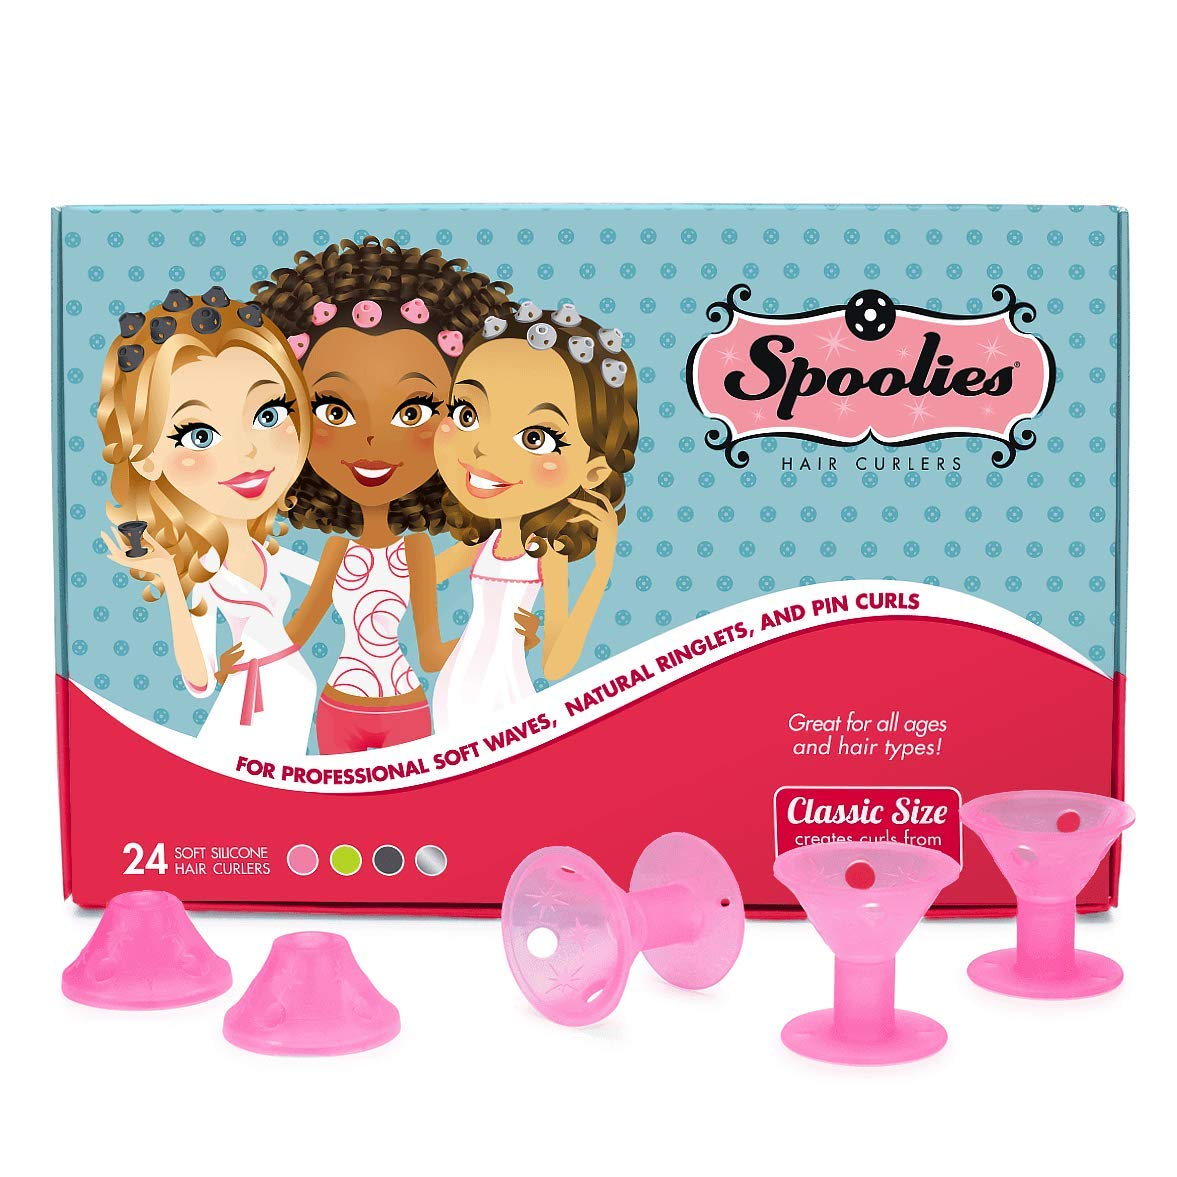 Original Spoolies Hair Curlers, Medium Size – 24 Count (Playful Pink) - Marvelous Mrs. Maisel Rollers for Retro Styles, Hair Extensions + Wigs